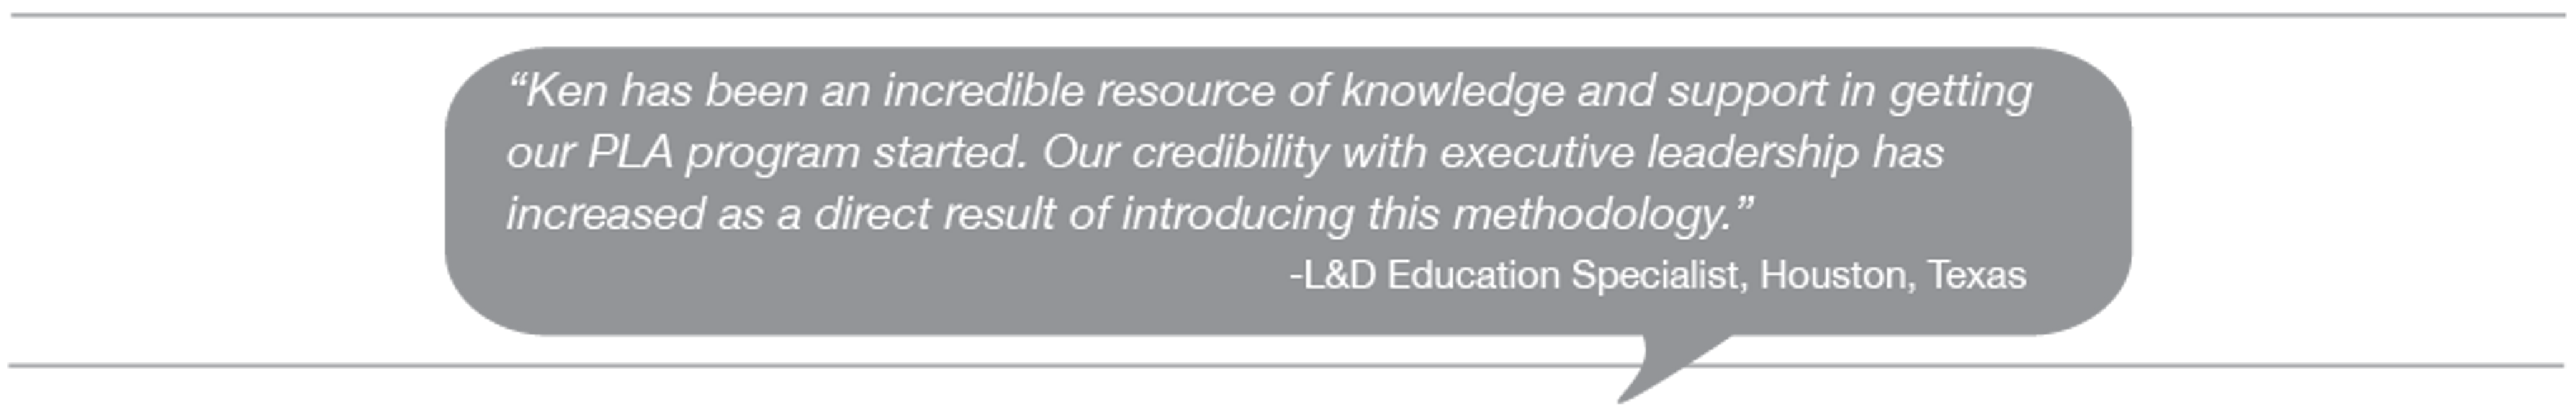 Testimonial: Our credibility with  leadership has increased as a direct result of introducing PLA